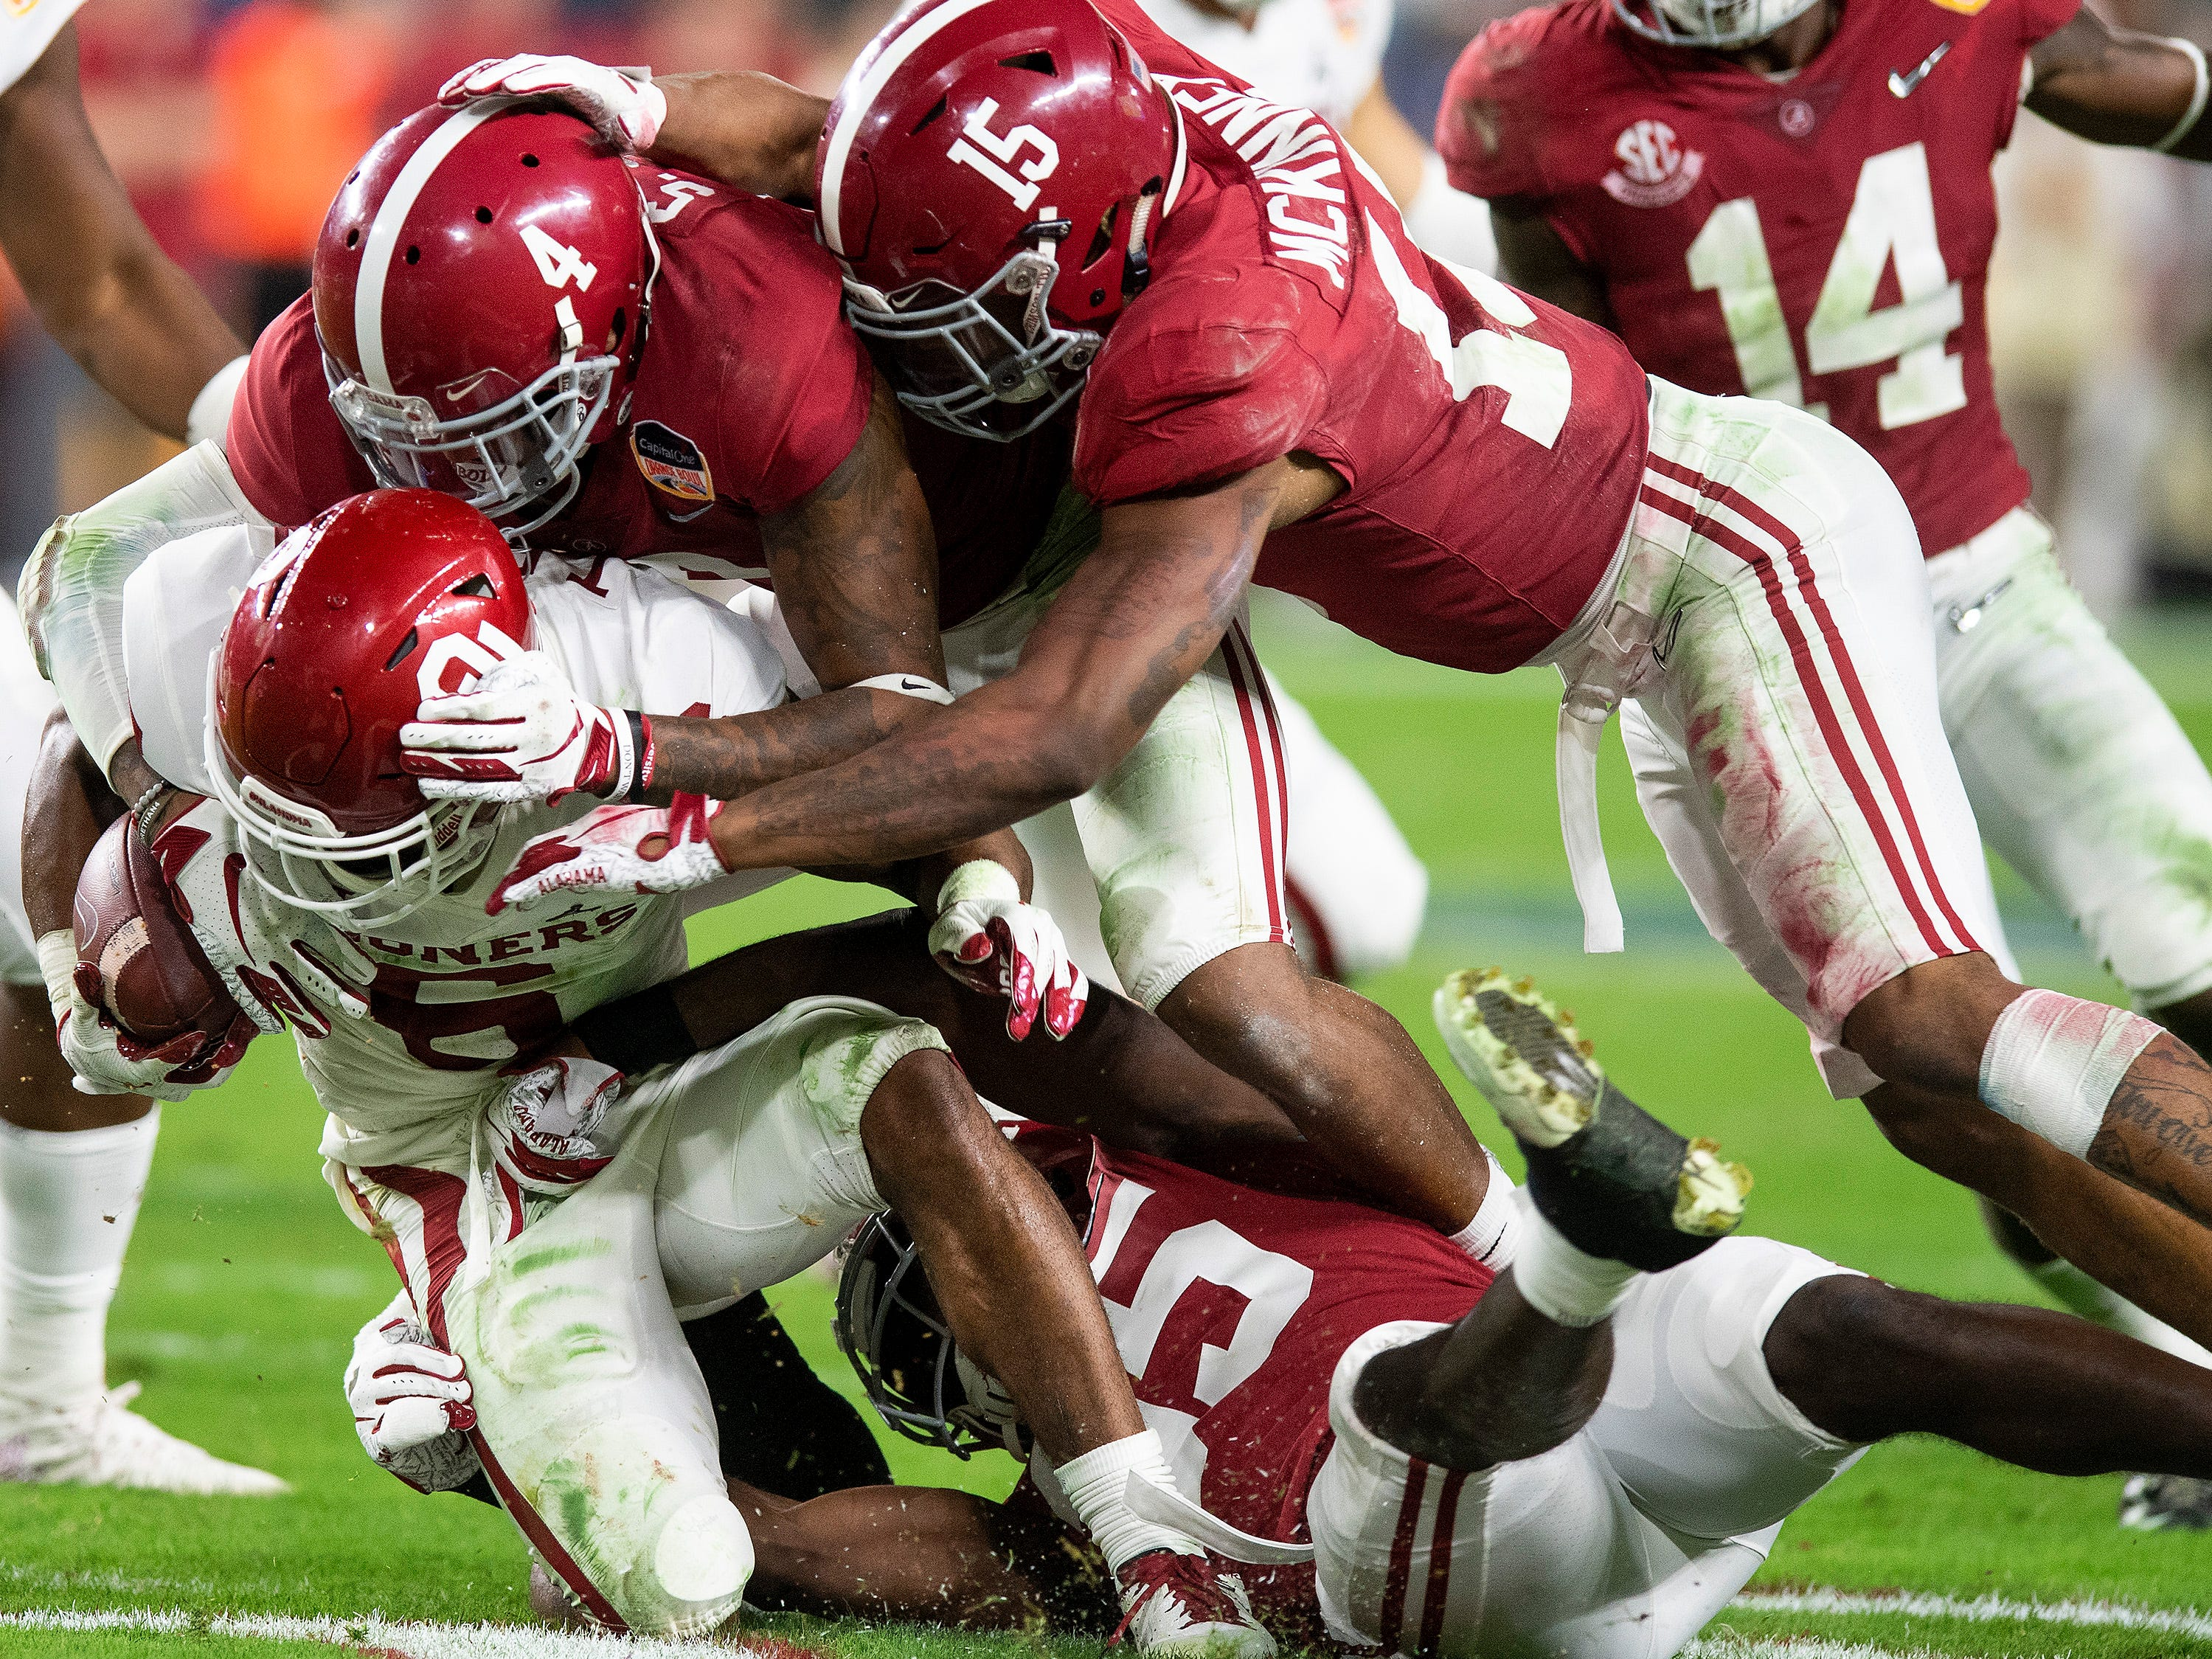 Alabama defensive backs Saivion Smith (4), Xavier McKinney (15) and D.J. Lewis (35) stop Oklahoma 's Tre Brown on a kick return in second half action of the Orange Bowl at Hard Rock Stadium in Miami Gardens, Fla., on Saturday December 29, 2018.